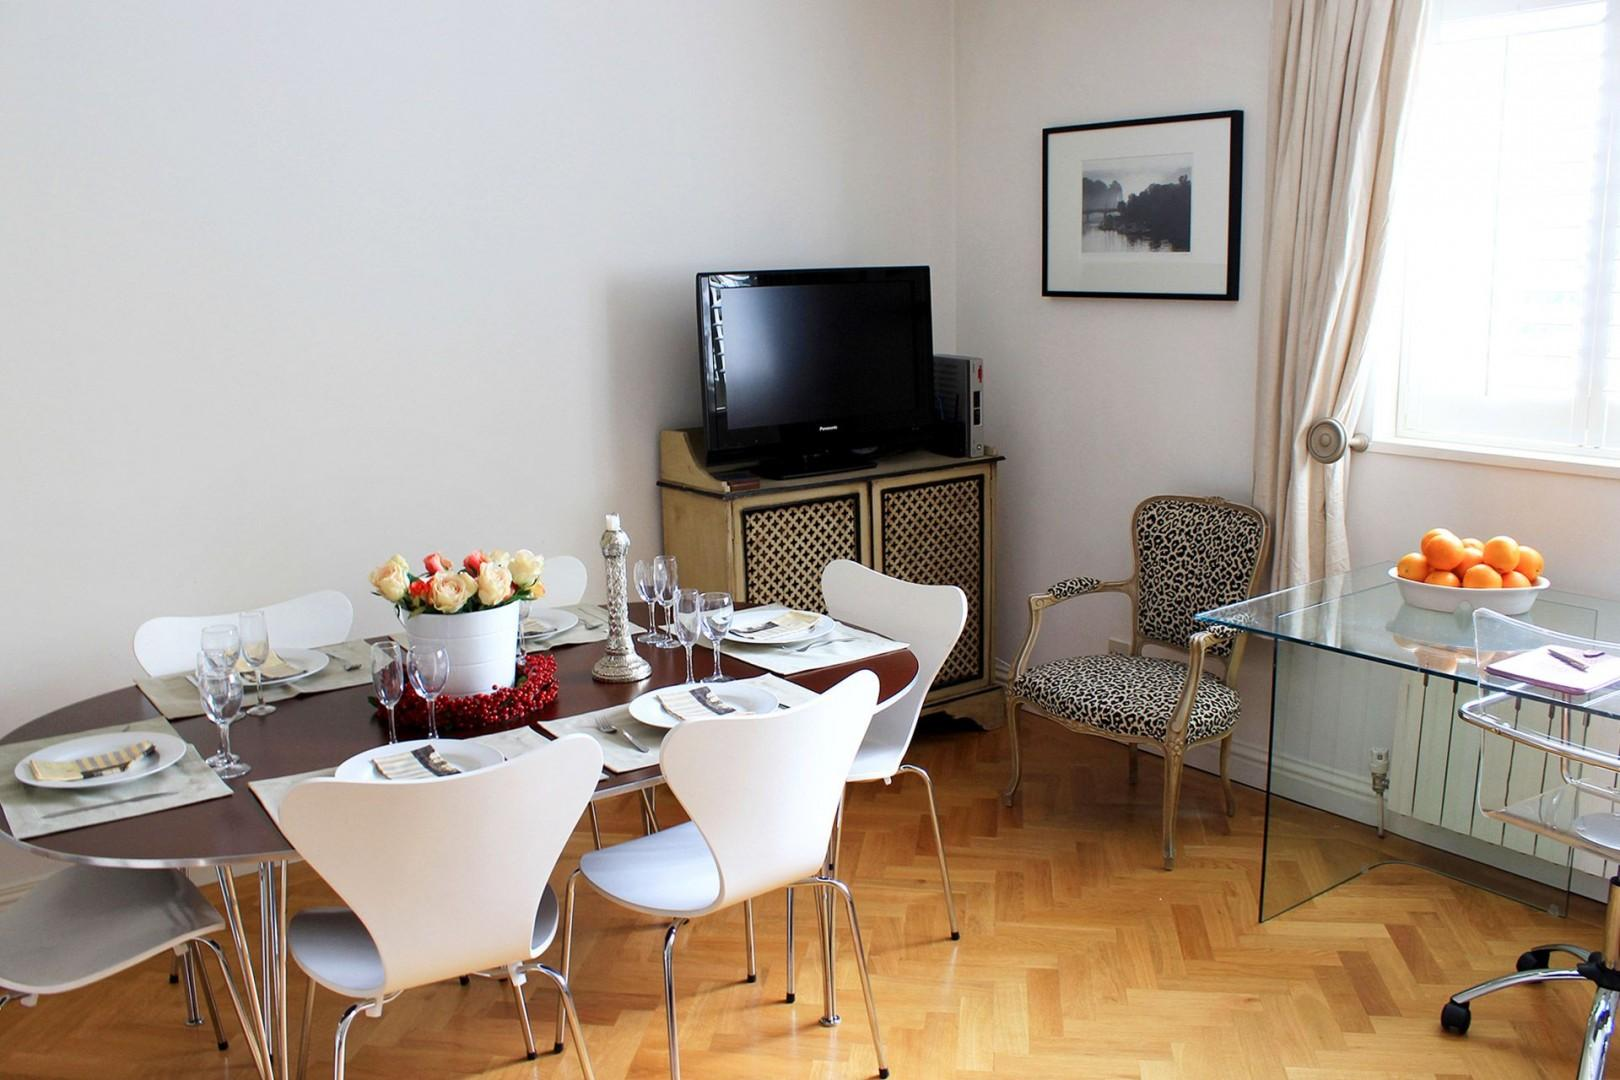 View towards the flat-screen TV and dining table